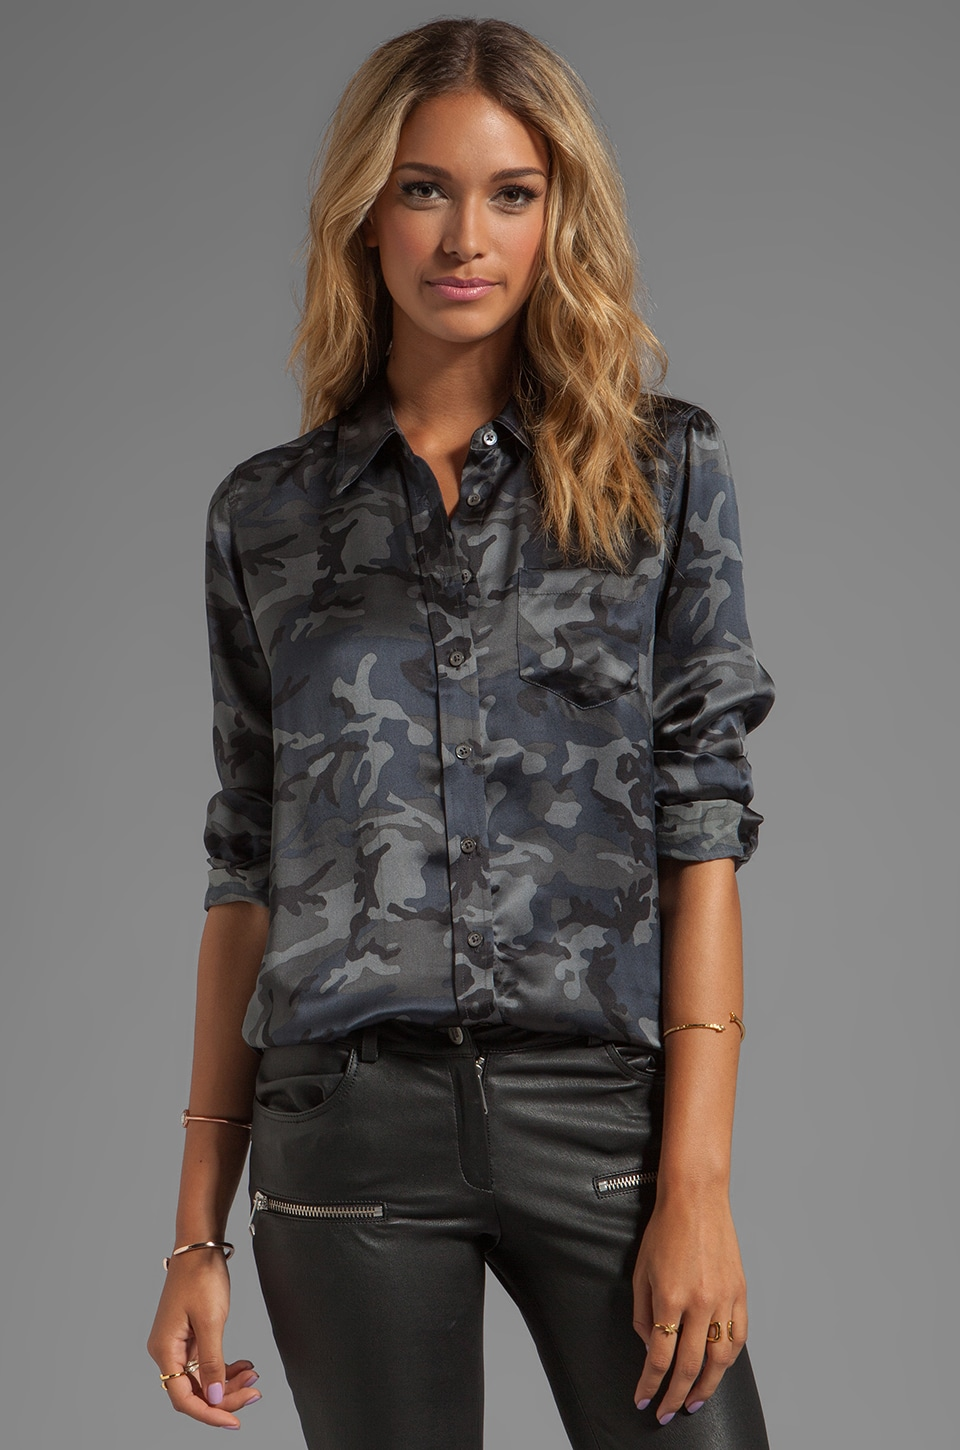 Equipment Underground Camo Printed Brett Blouse in Traditional Camo